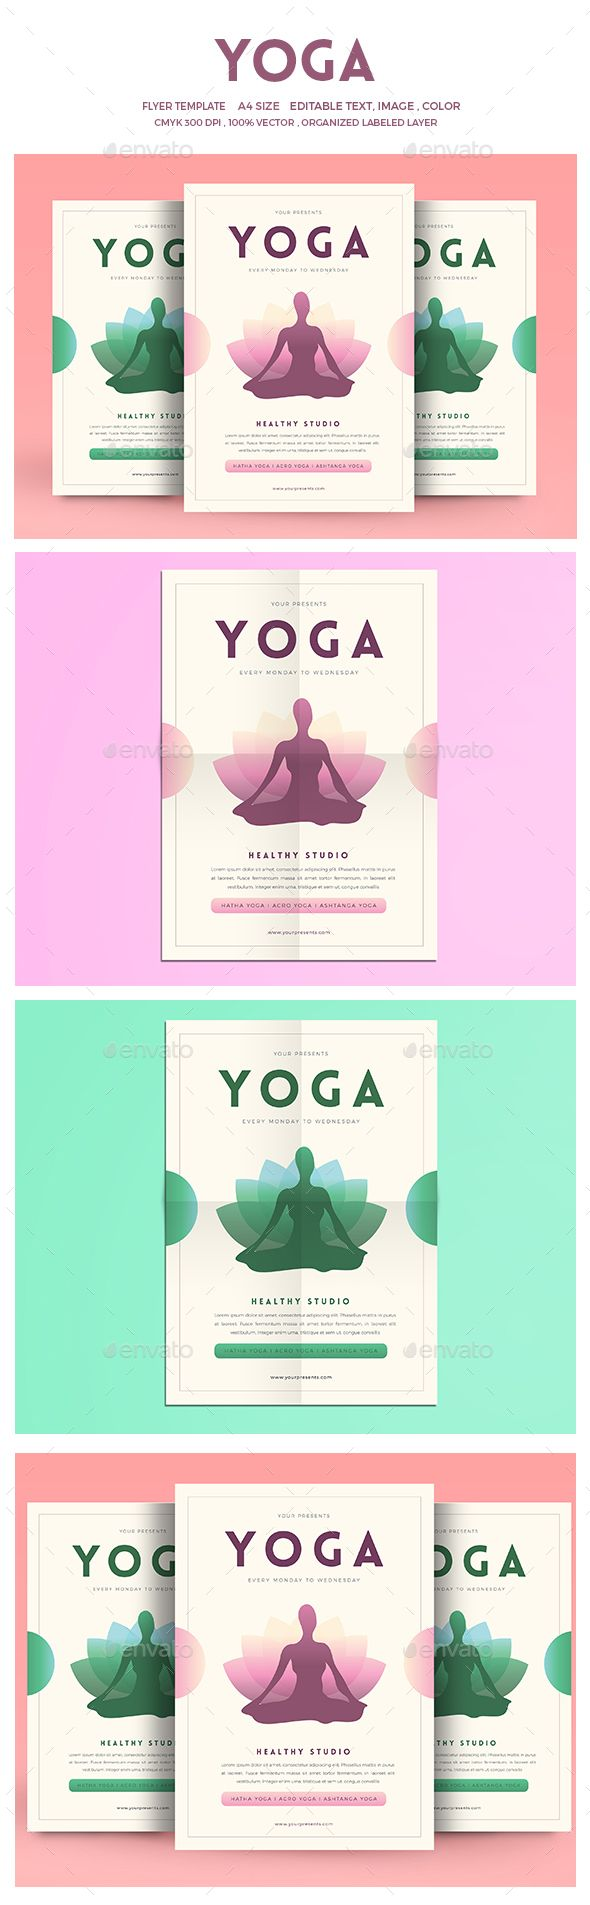 this flyer made for your yoga advertisement, yo can also use this flyer for spa, beauty center or yoga event. FeaturesAi cs5 and Psd FIle 100 vector CMYK 300 DPI A4 Size Full editable Well organized LayersFont UsedLovelo Montserratdont forget to rate this